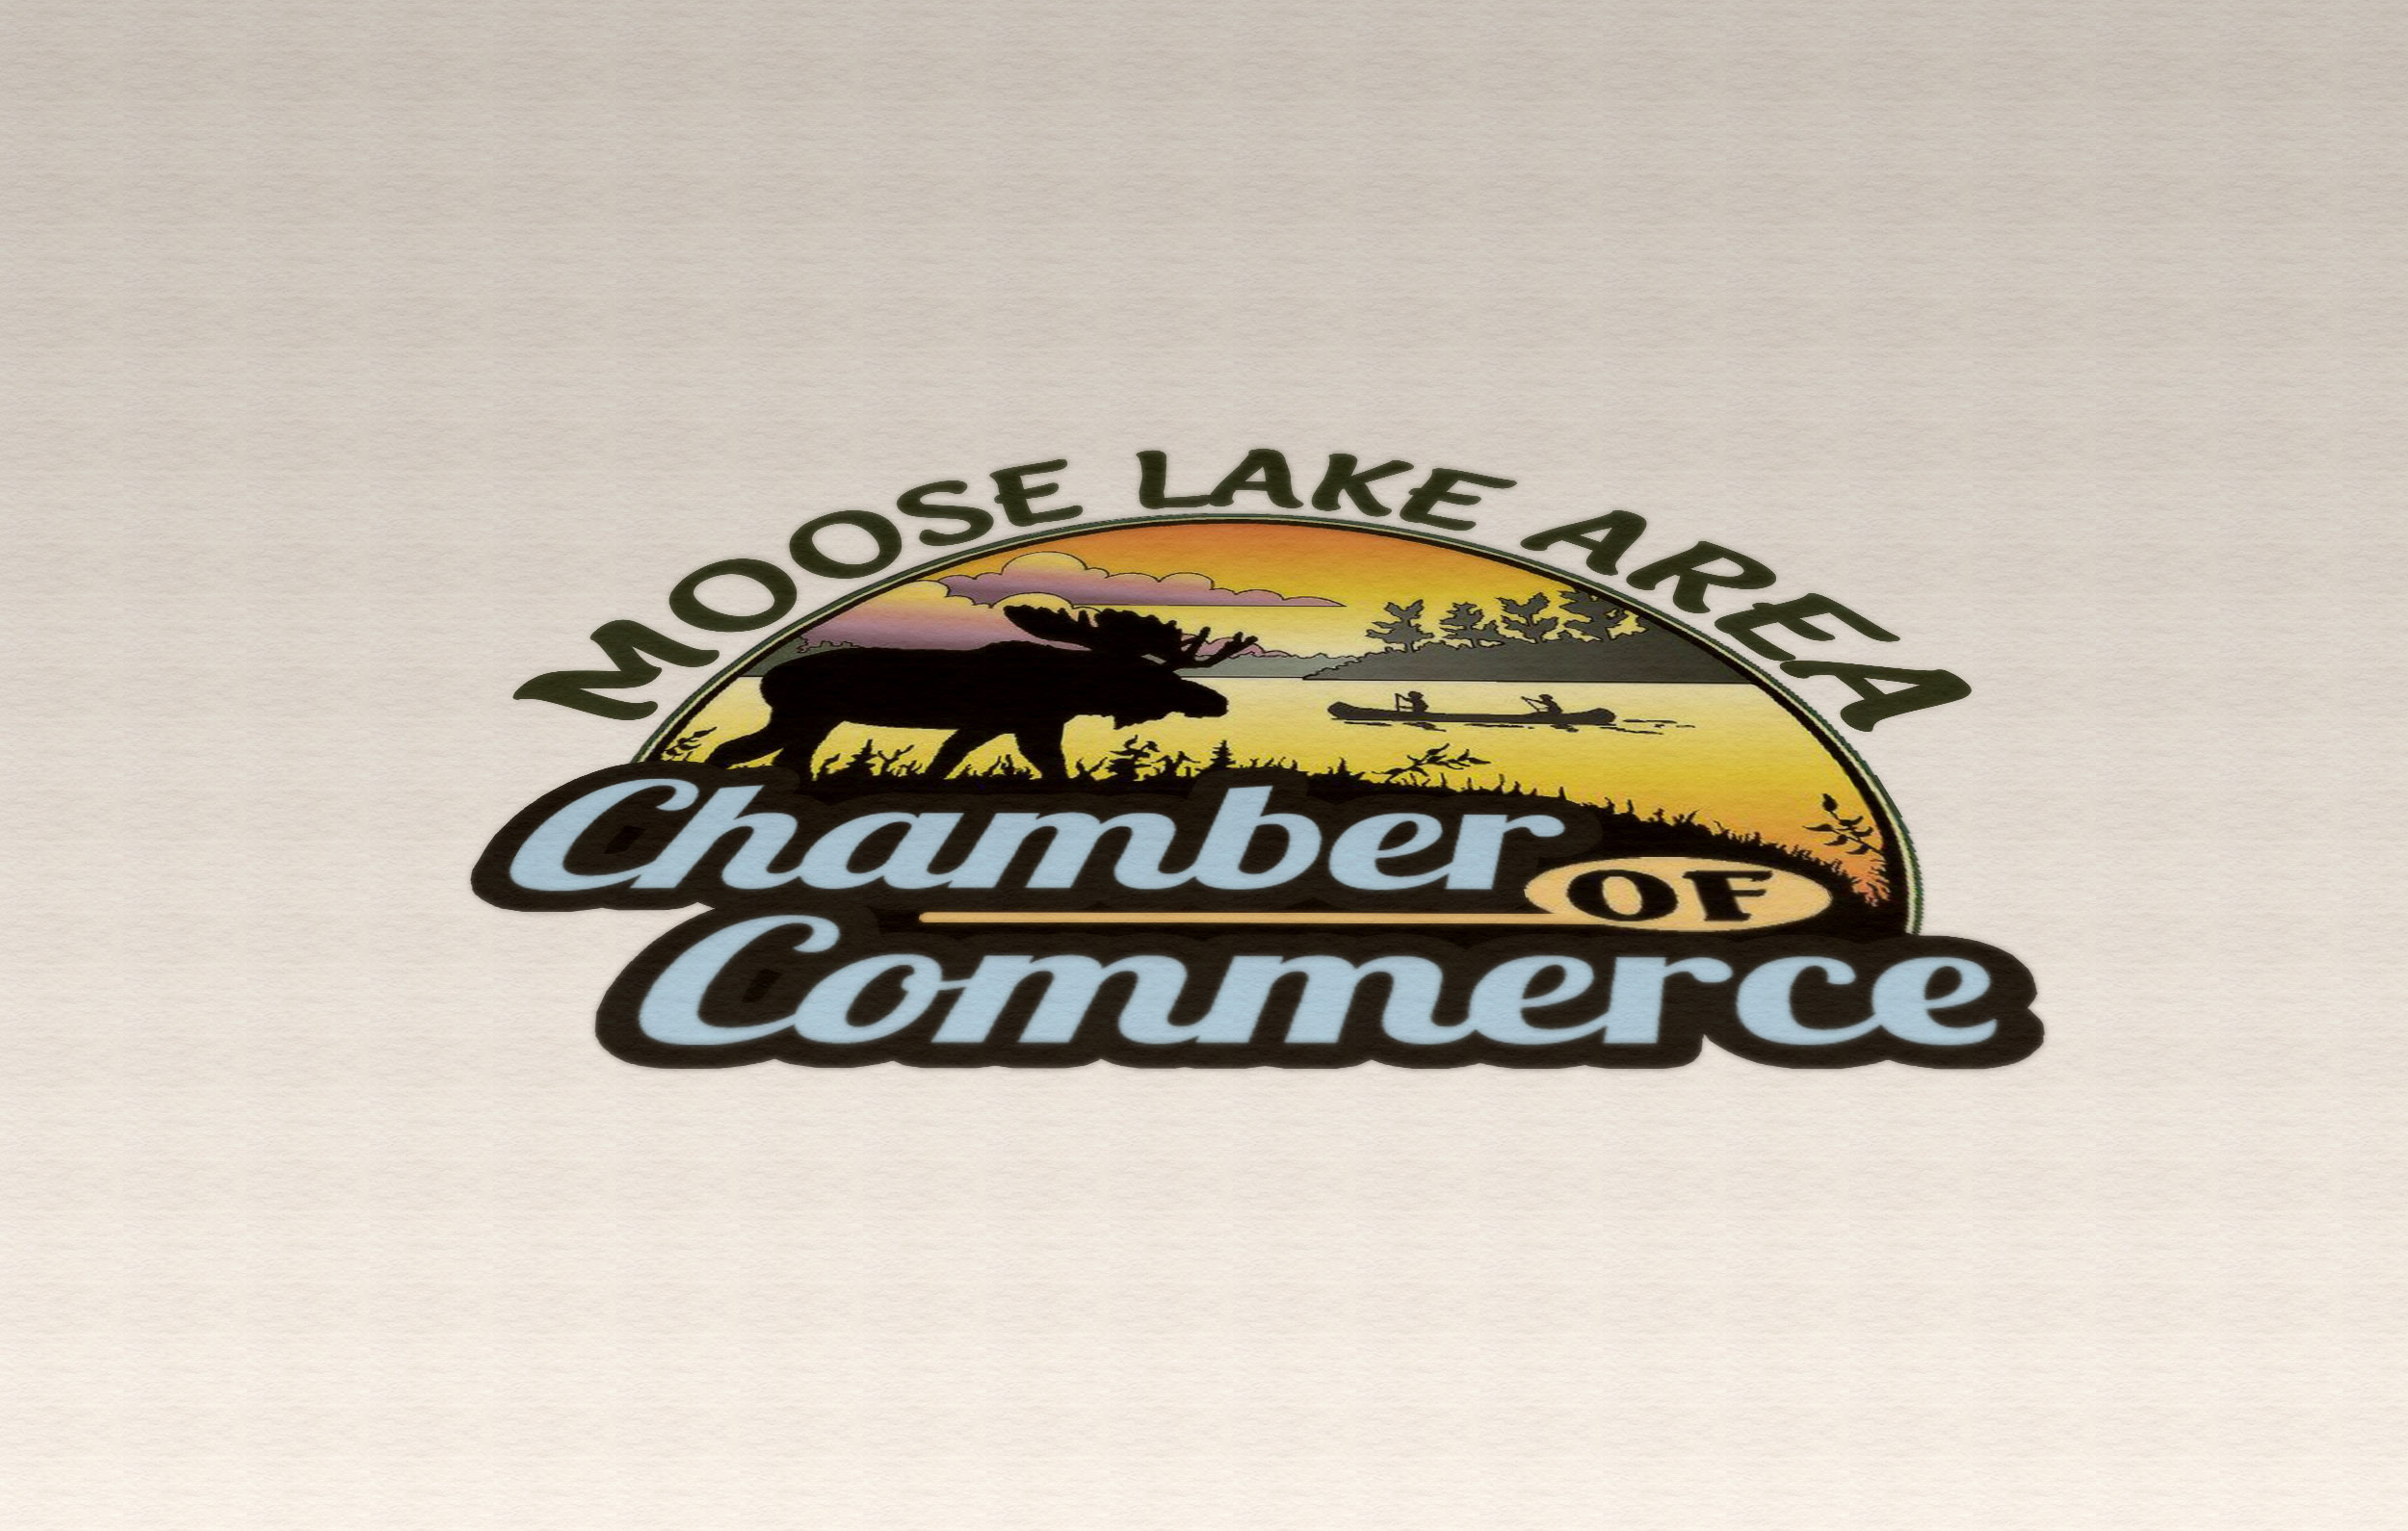 Moose Lake Chamber of Commerce